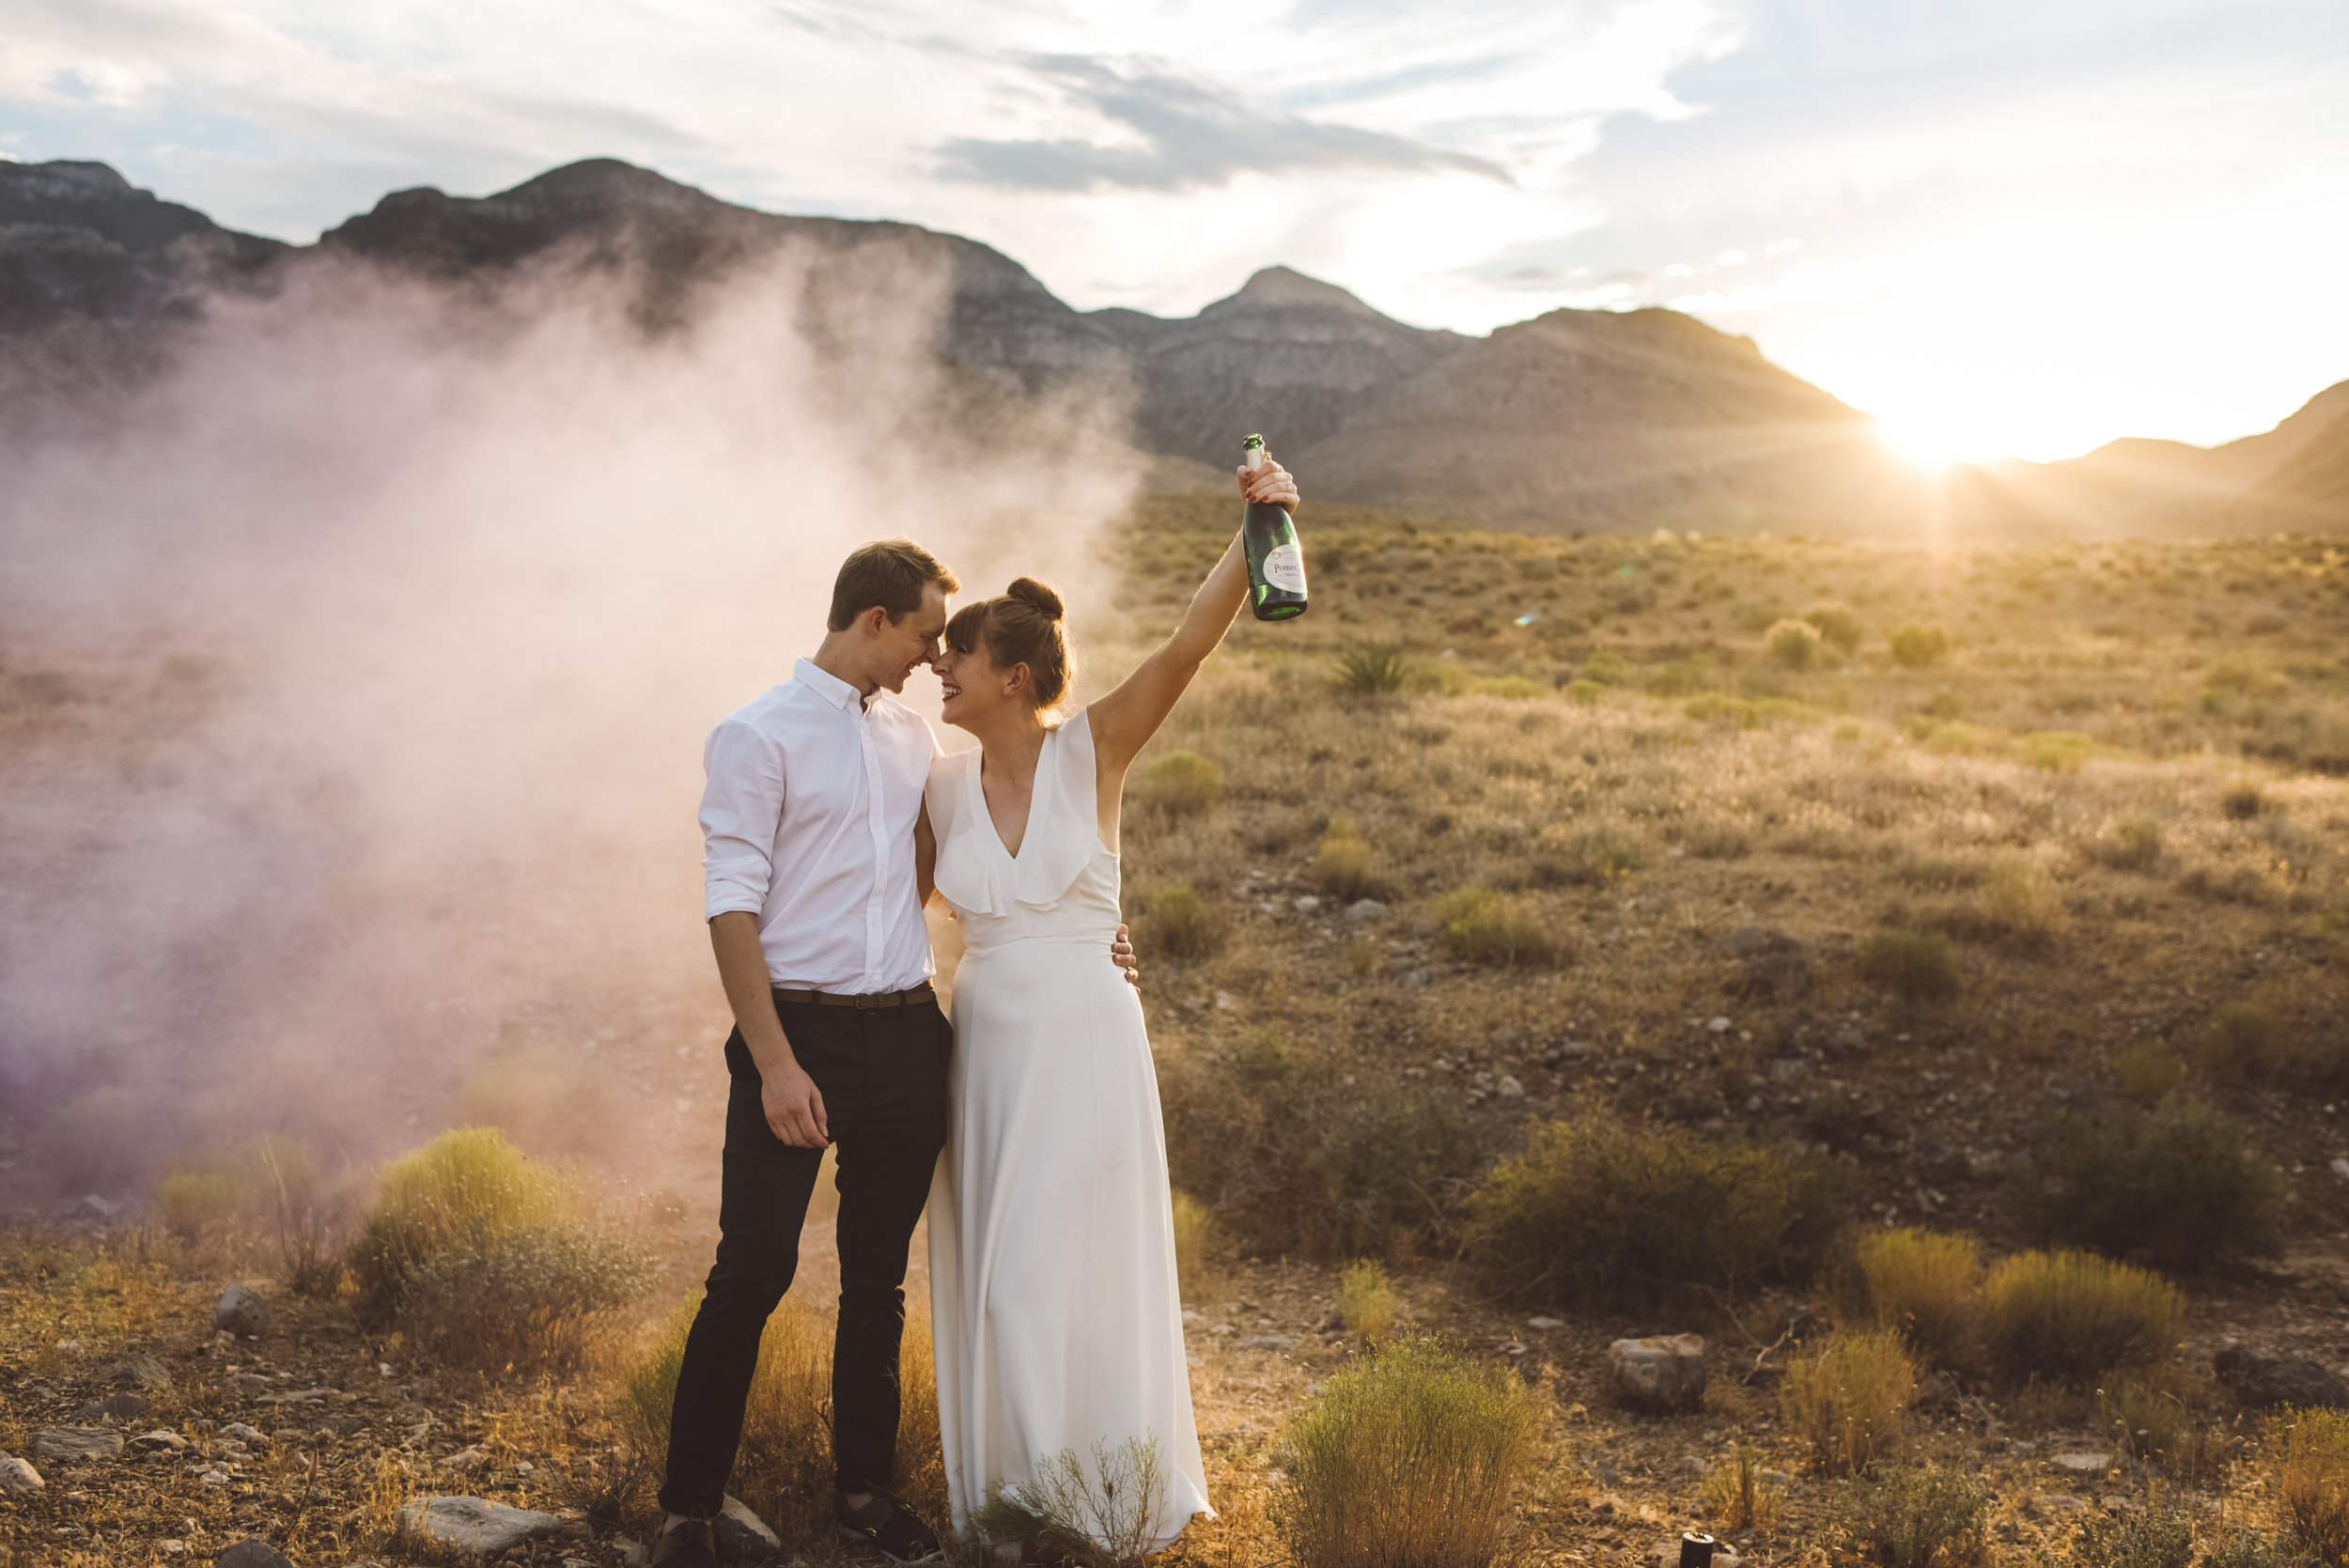 FLora Pop Desert Ceremony Red Rock Las Vegas Photography by Ashley Marie-285.jpg